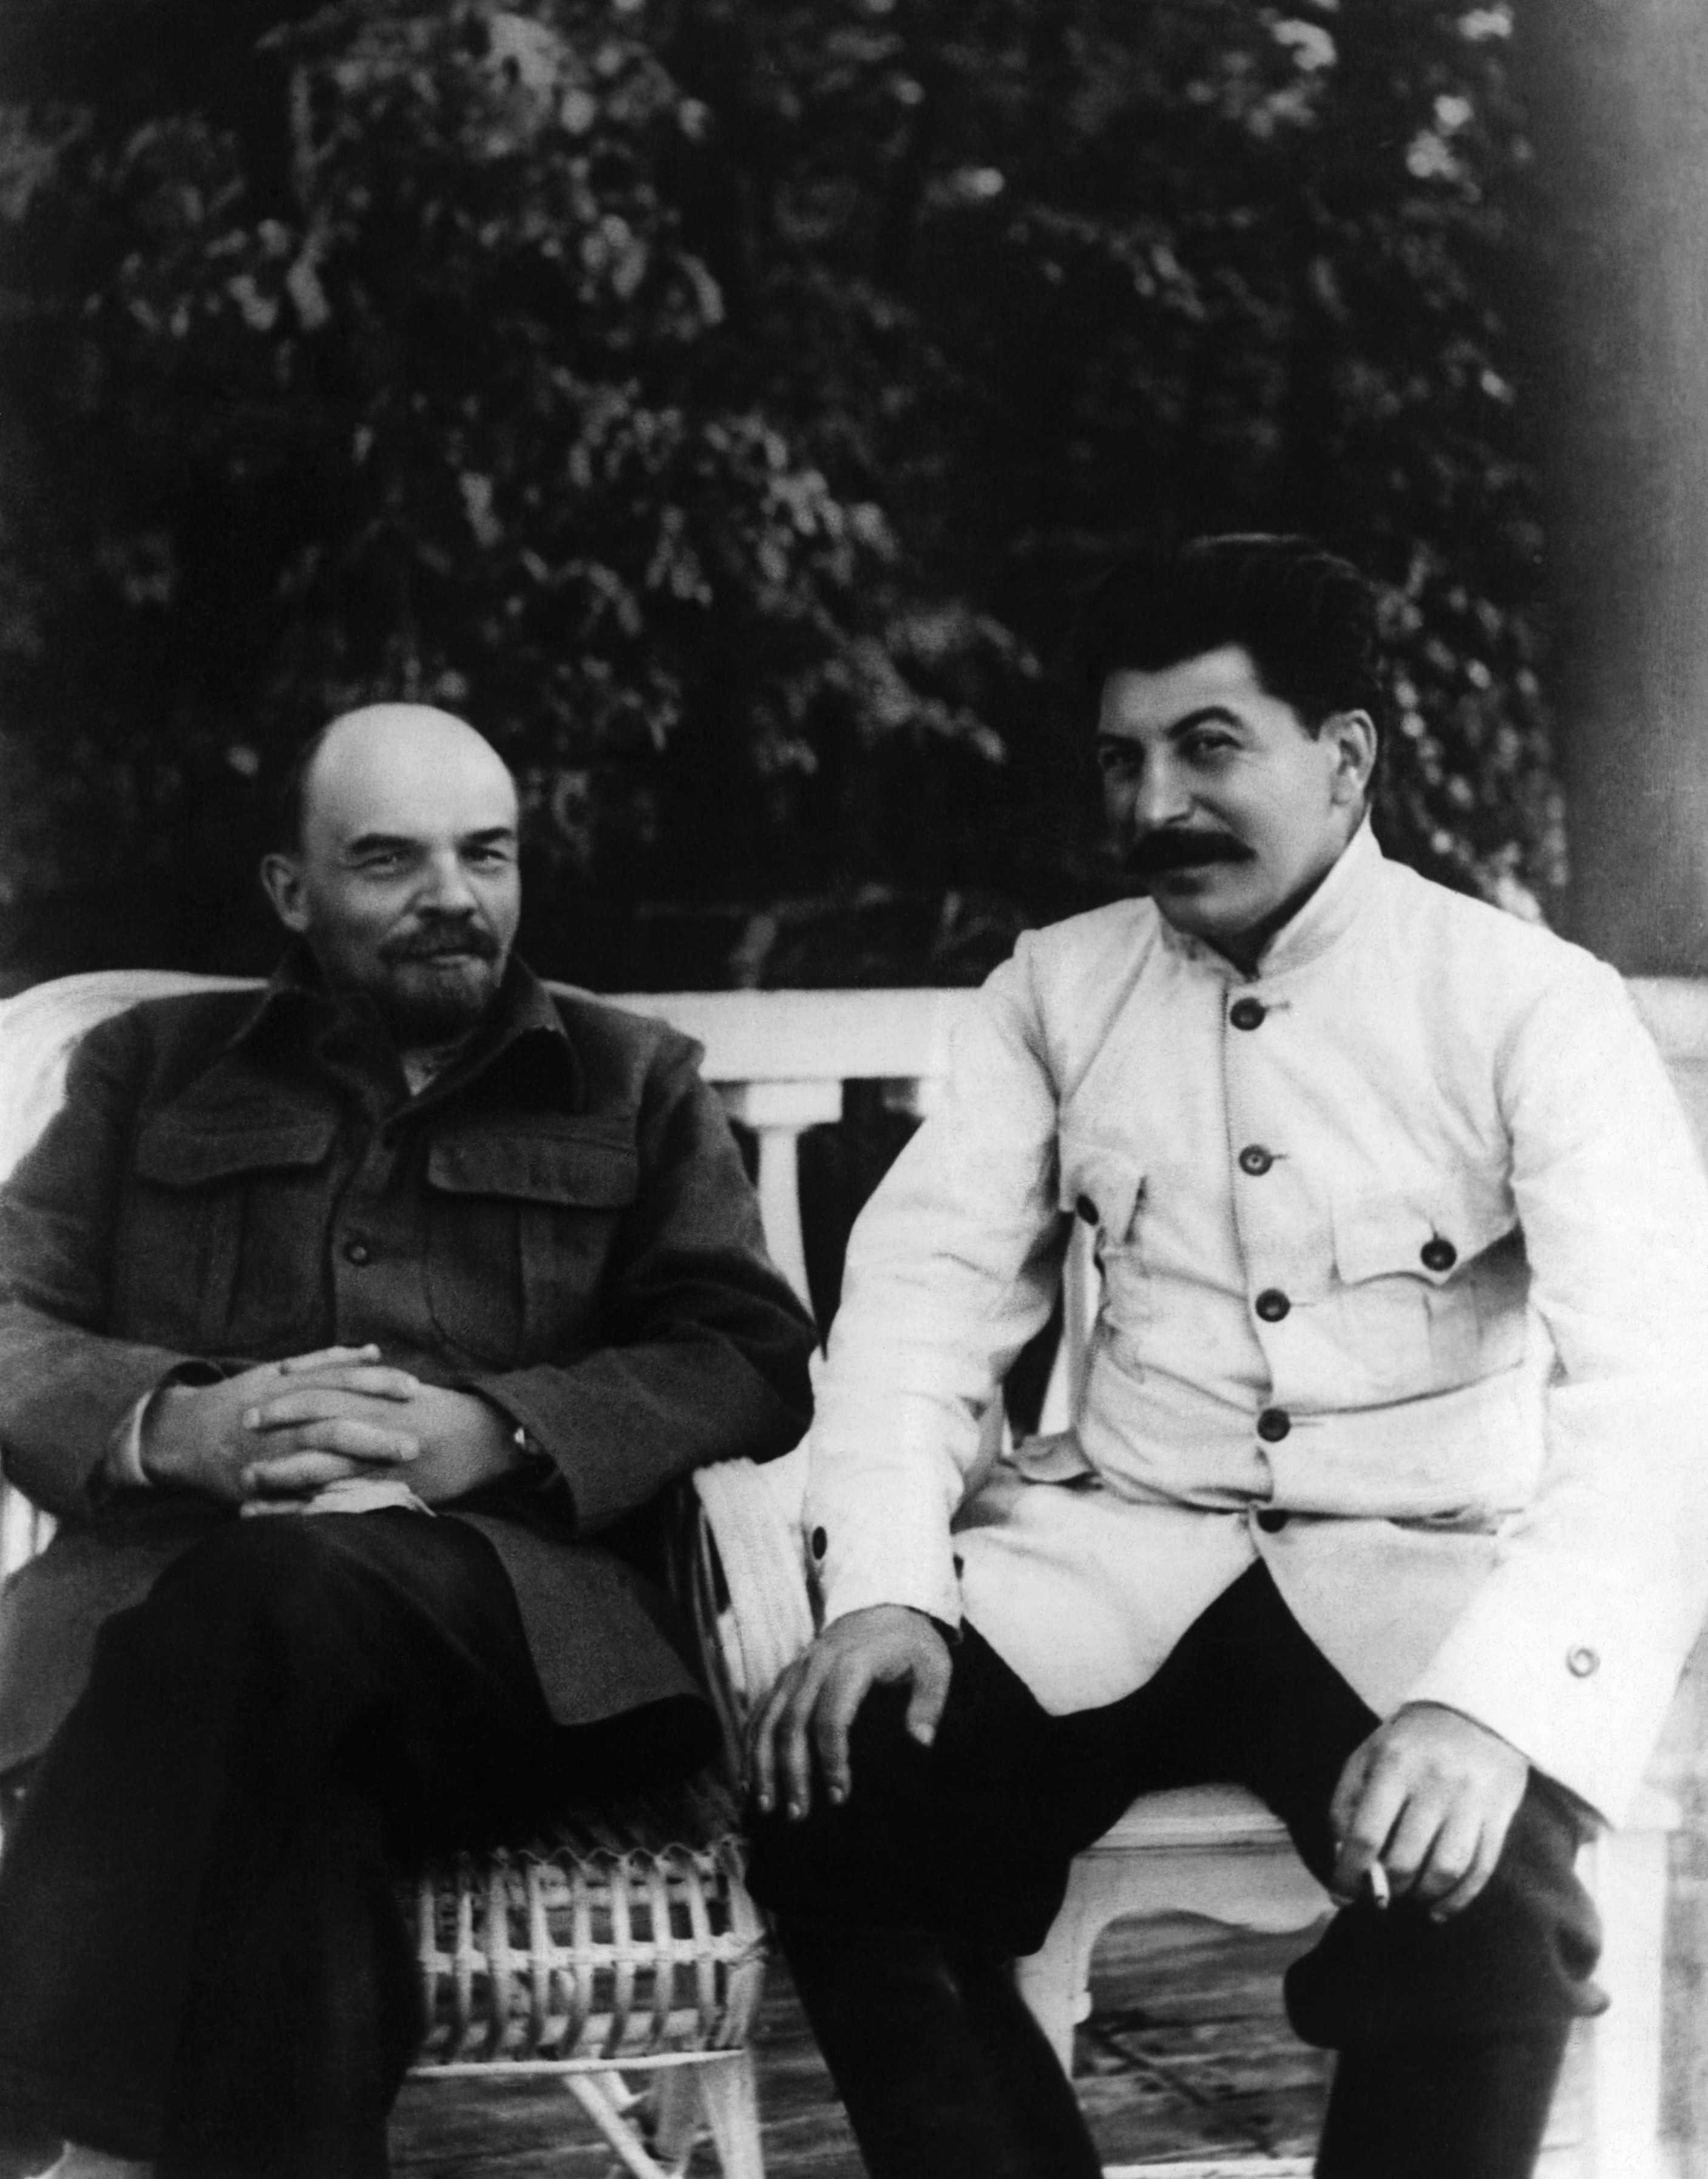 bulgakov relationship with stalin and lenin